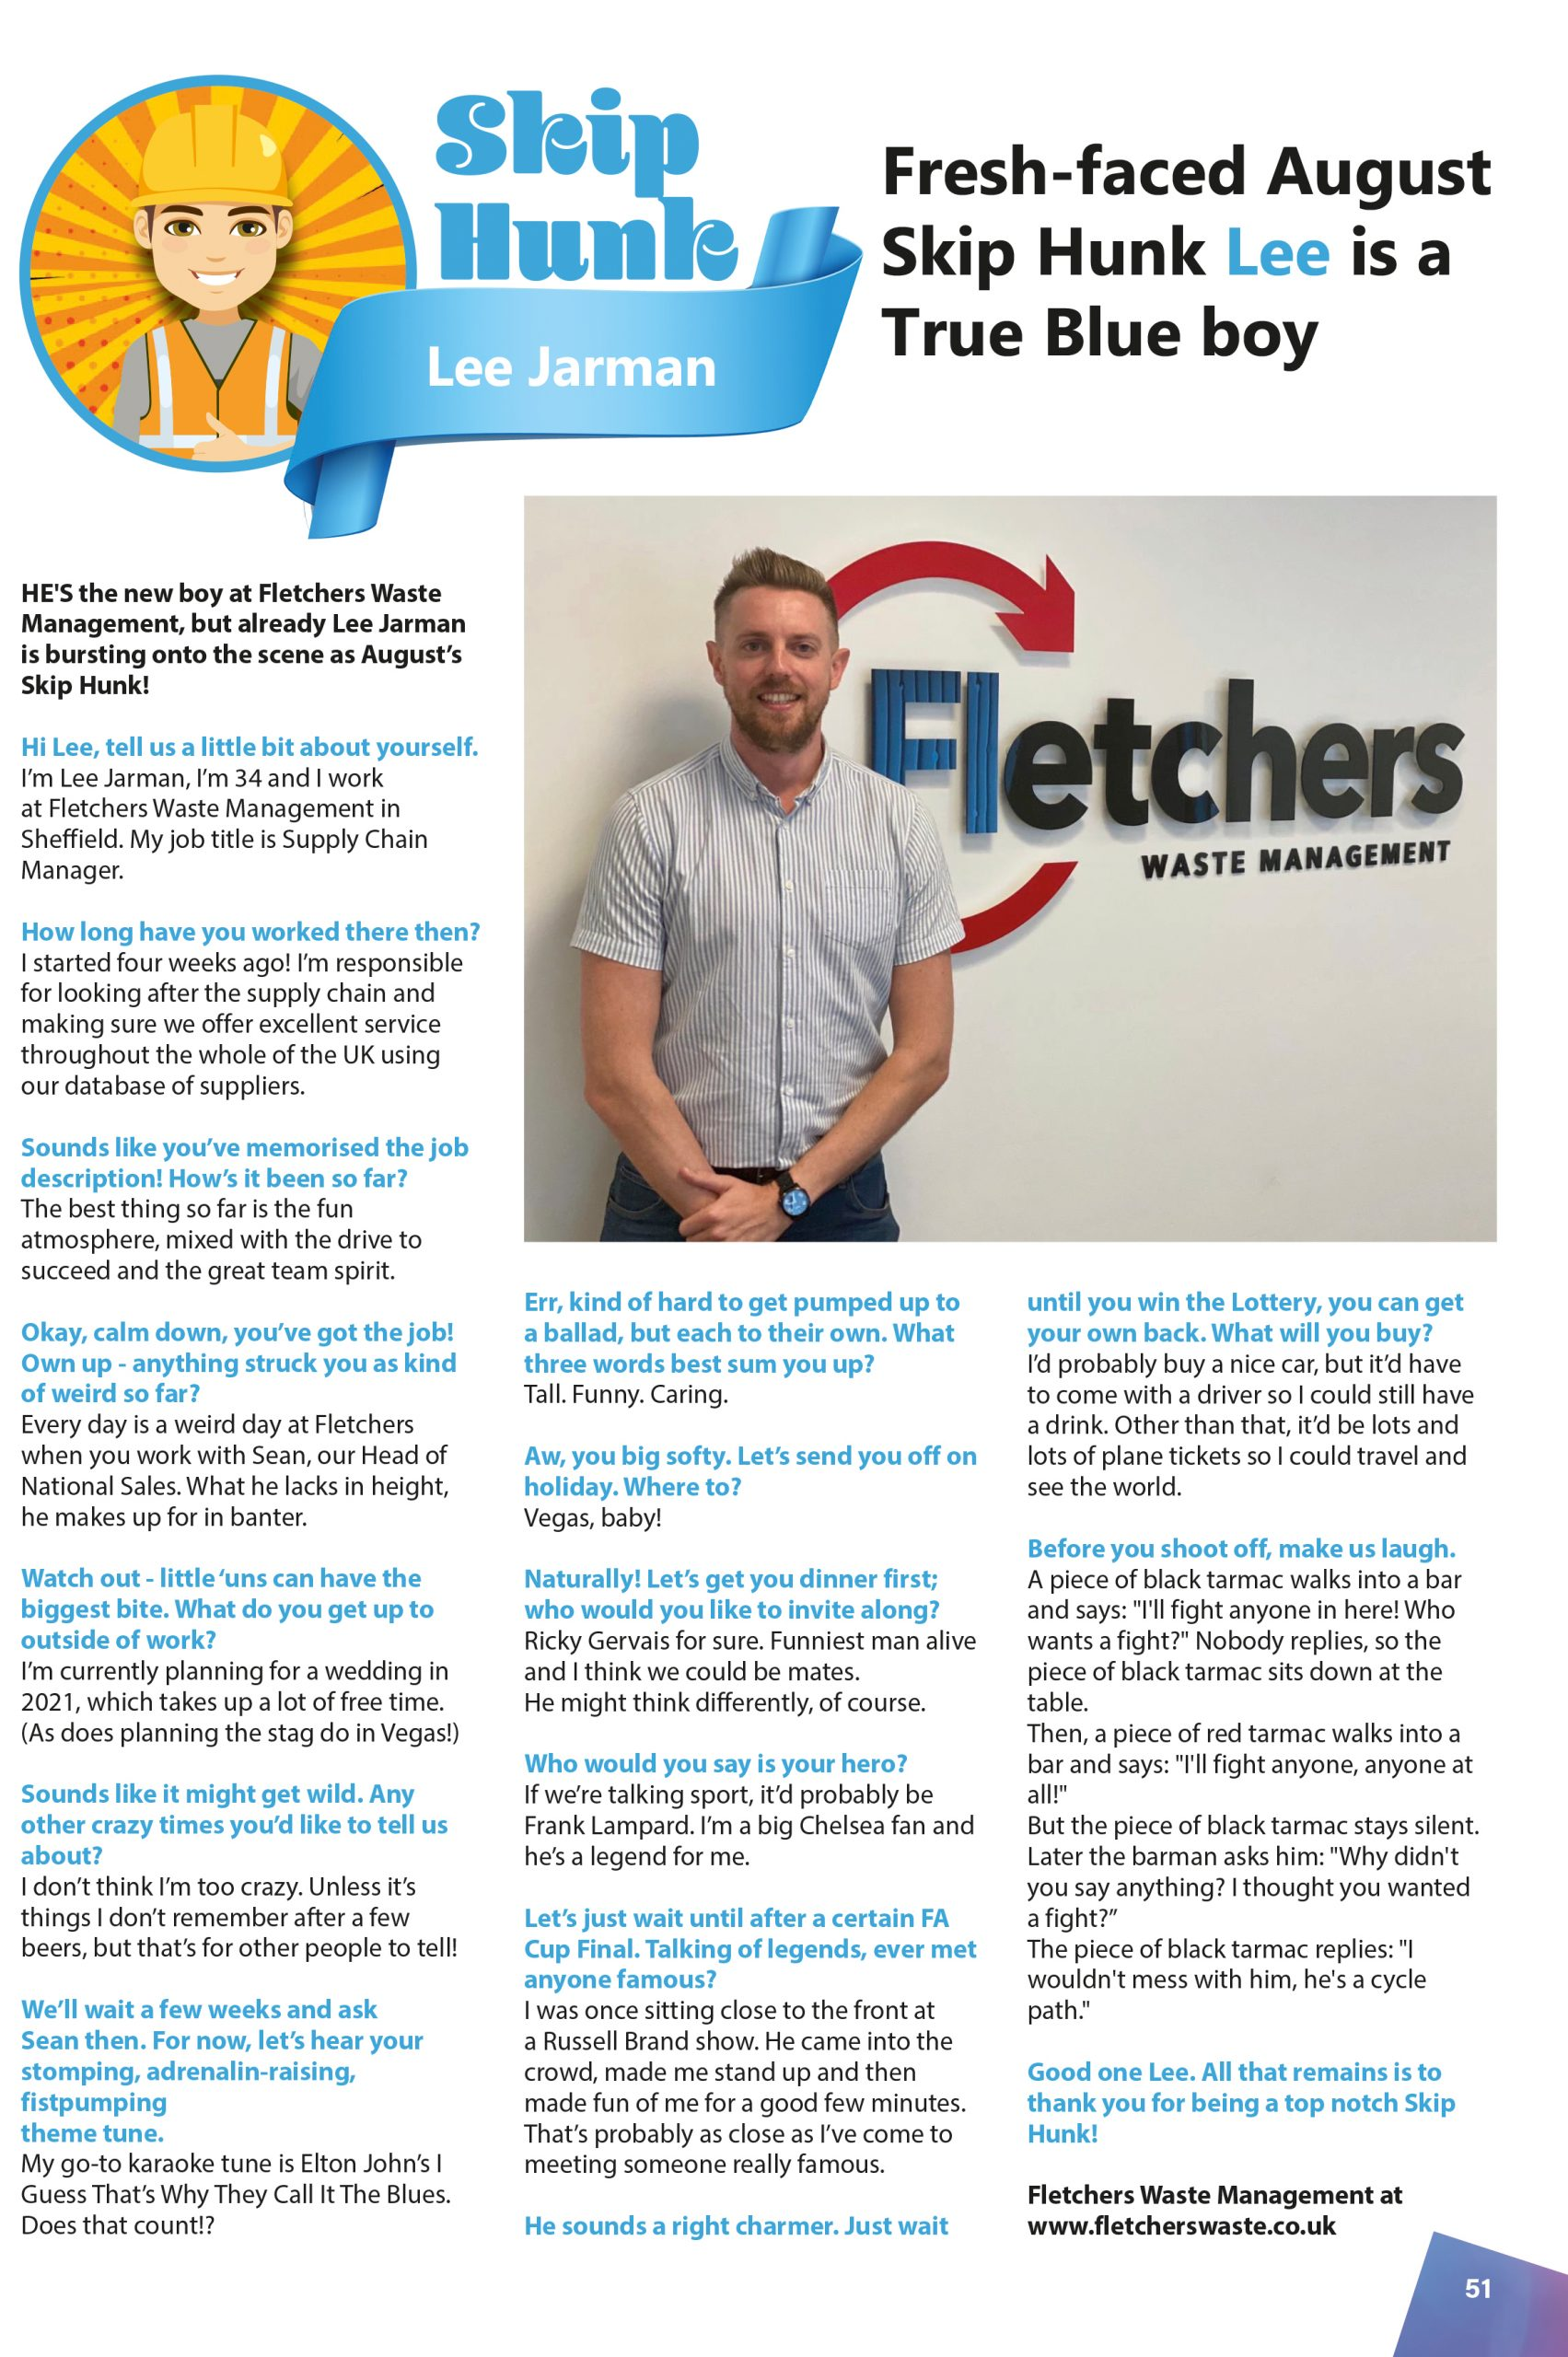 August's Skip Hunk: Lee Jarman of Fletchers Waste Management